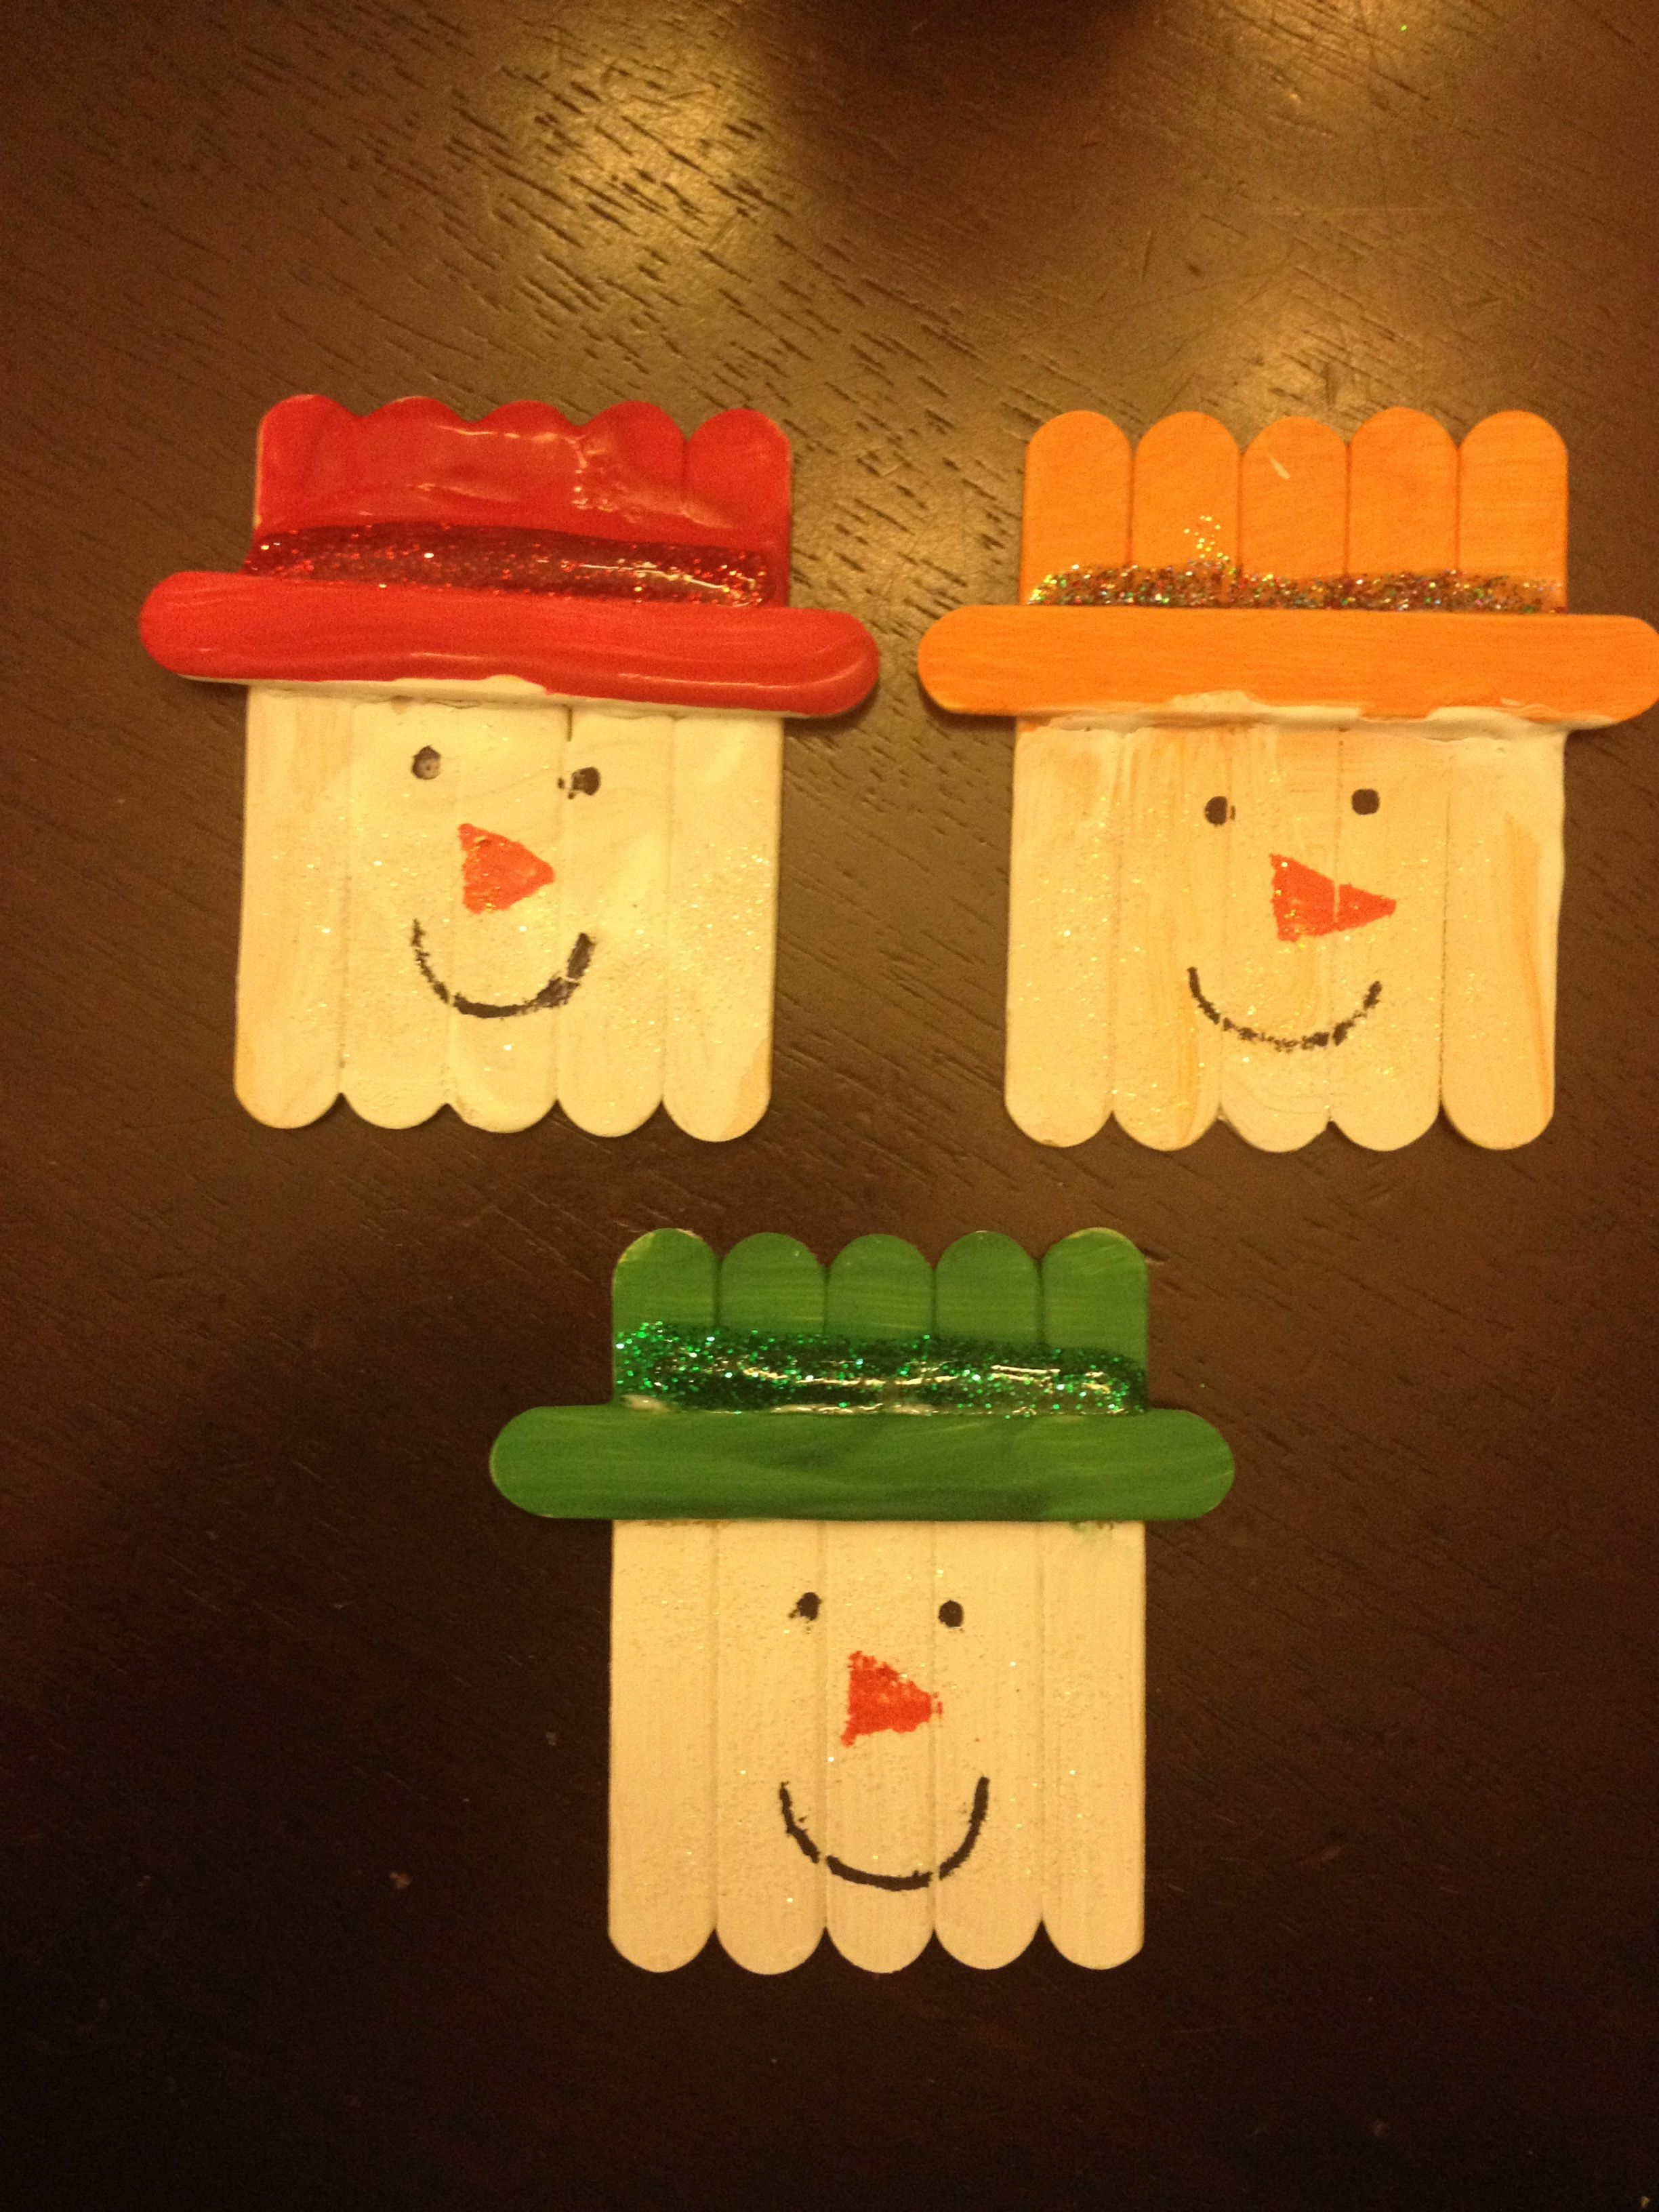 Excellent Fun Craft For Kids Of All Ages Can Be